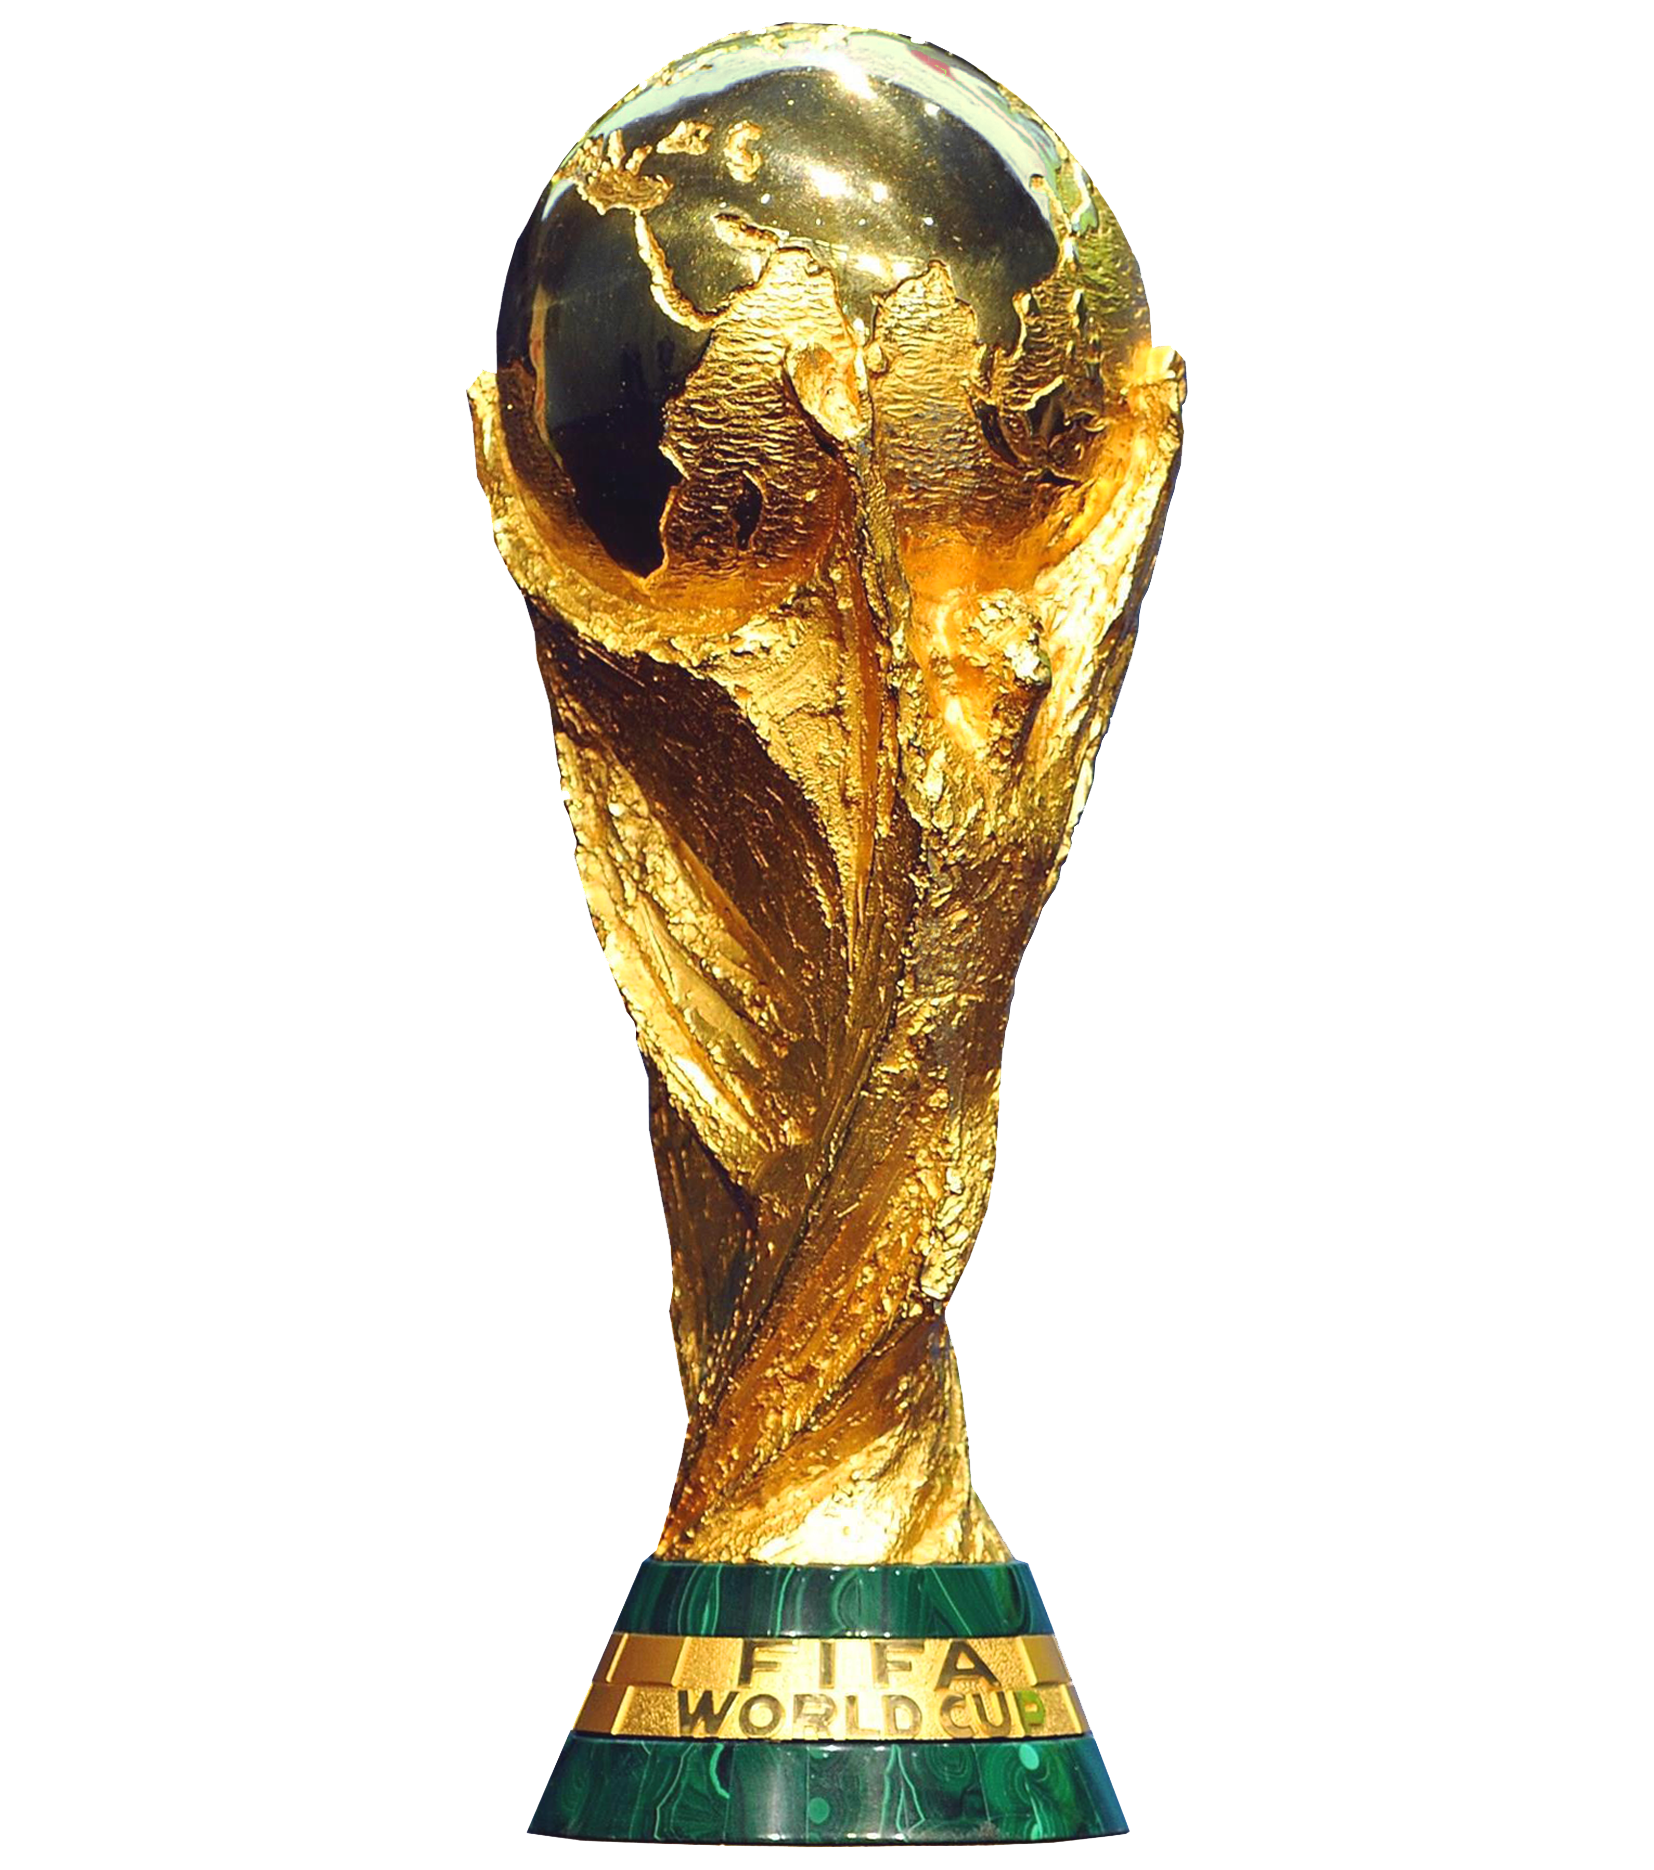 World cup trophy png. Eurosportbg com